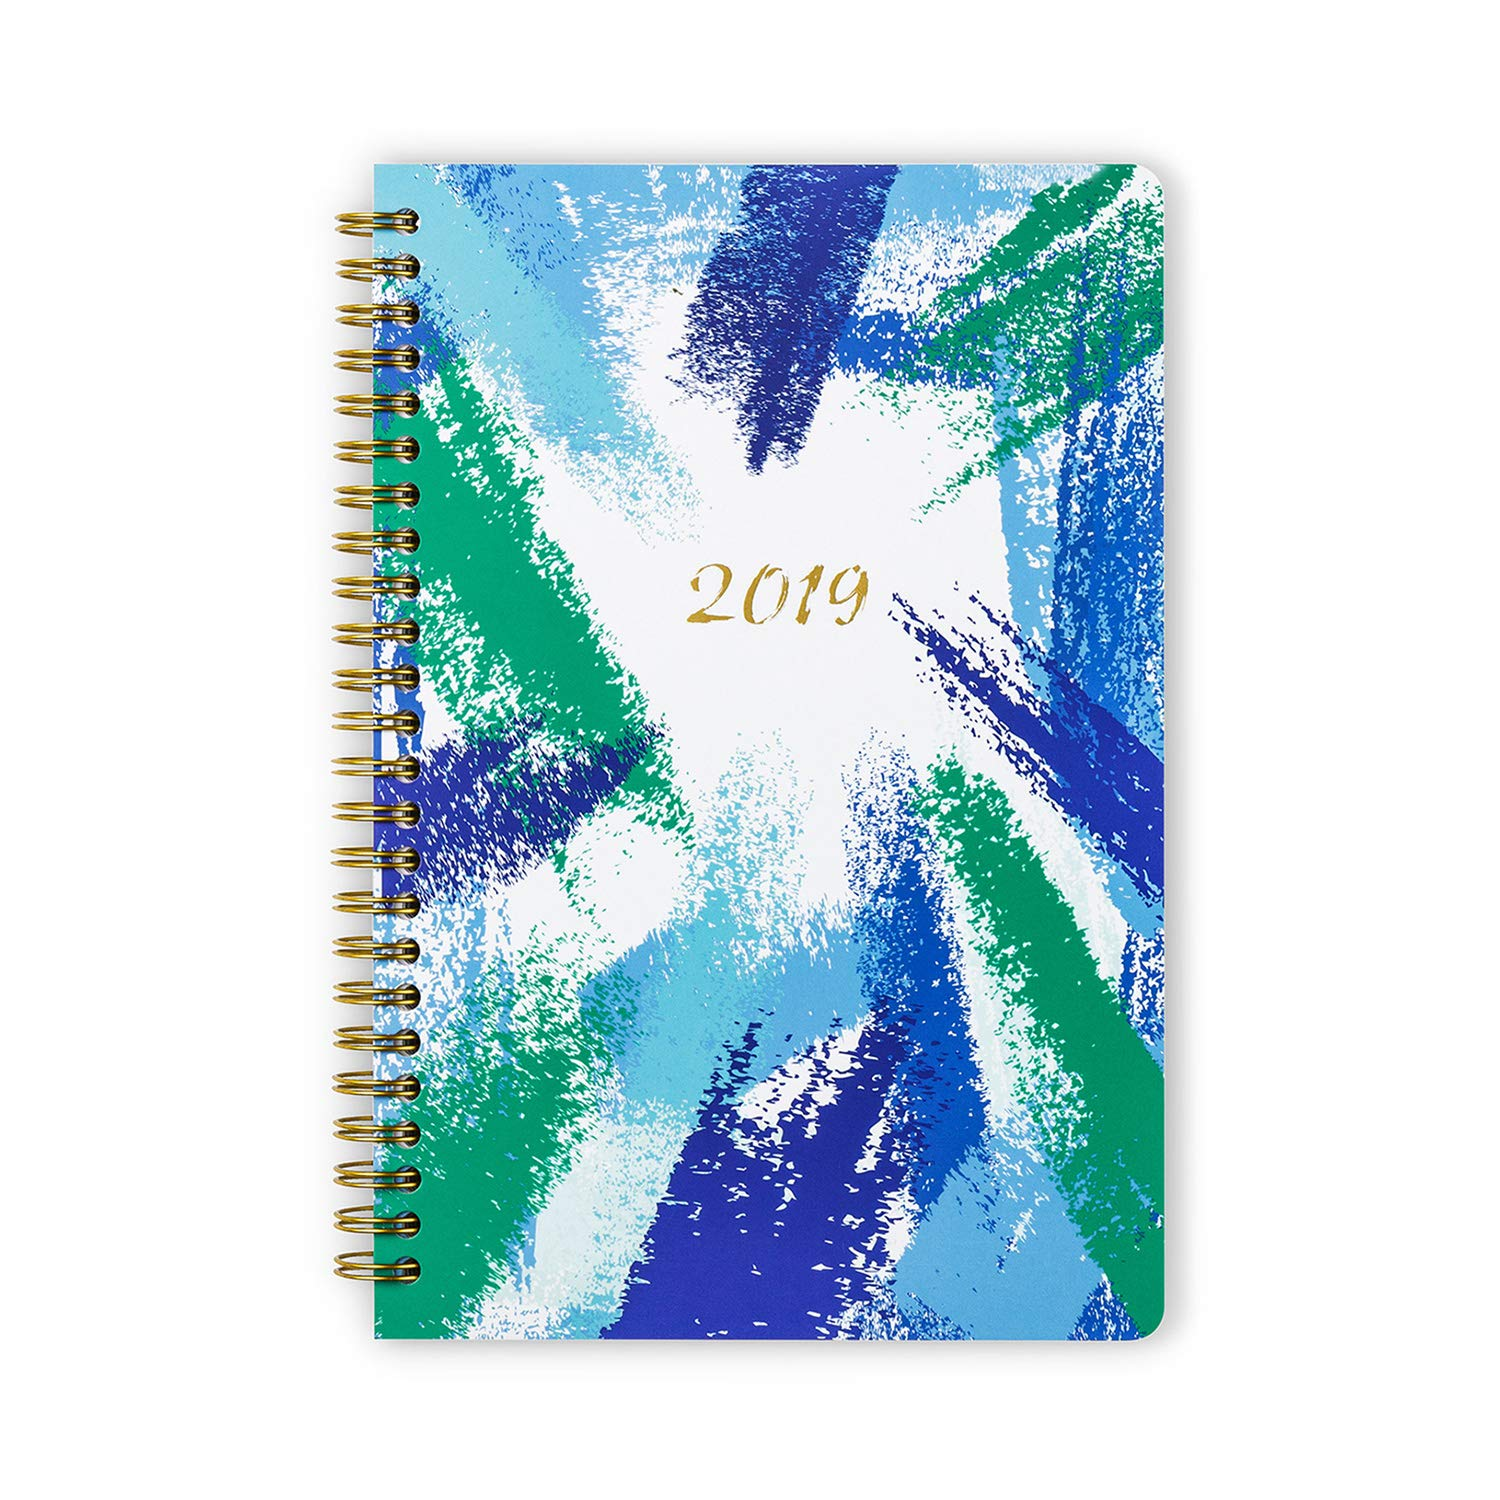 """2019 Weekly Planner (Nov 2018 –Dec 2019) Hardcover Daily Monthly Yearly Calendar Schedule Notebook and Organizer, 5.5 x 8"""""""